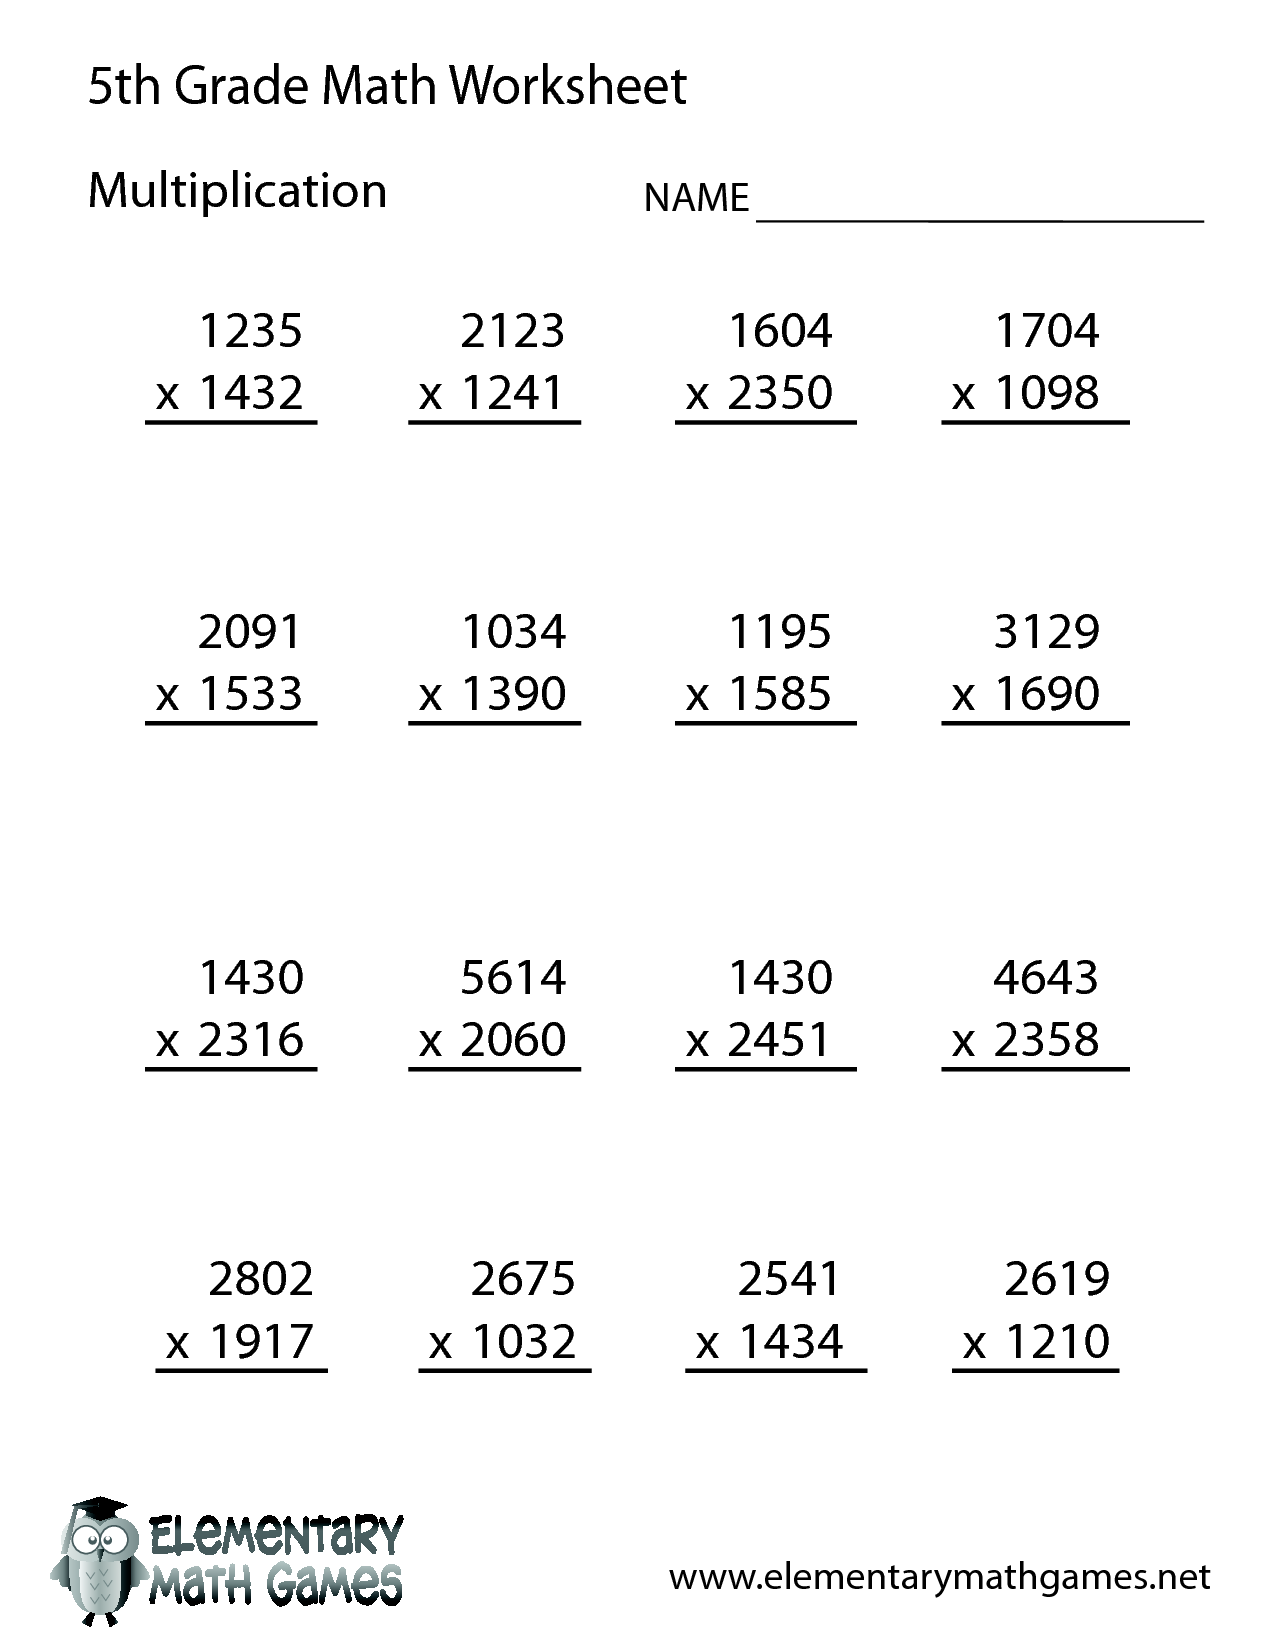 free math worksheets for th grade  th grade math worksheet  free math worksheets for th grade  th grade math worksheet